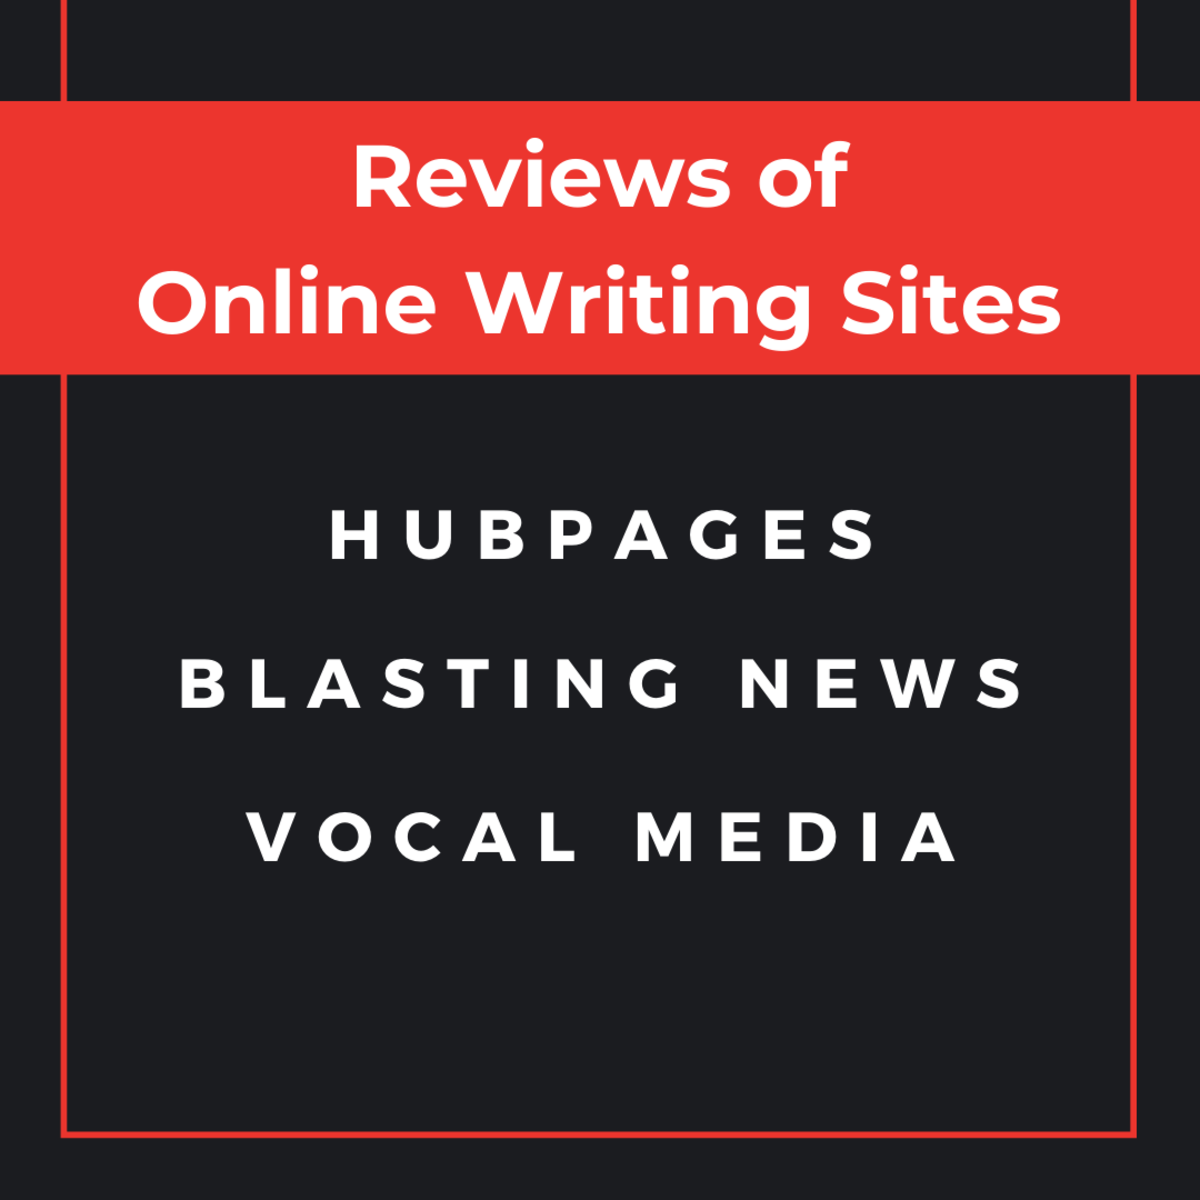 Writing for HubPages, Blasting News, and Vocal Media: Reviews